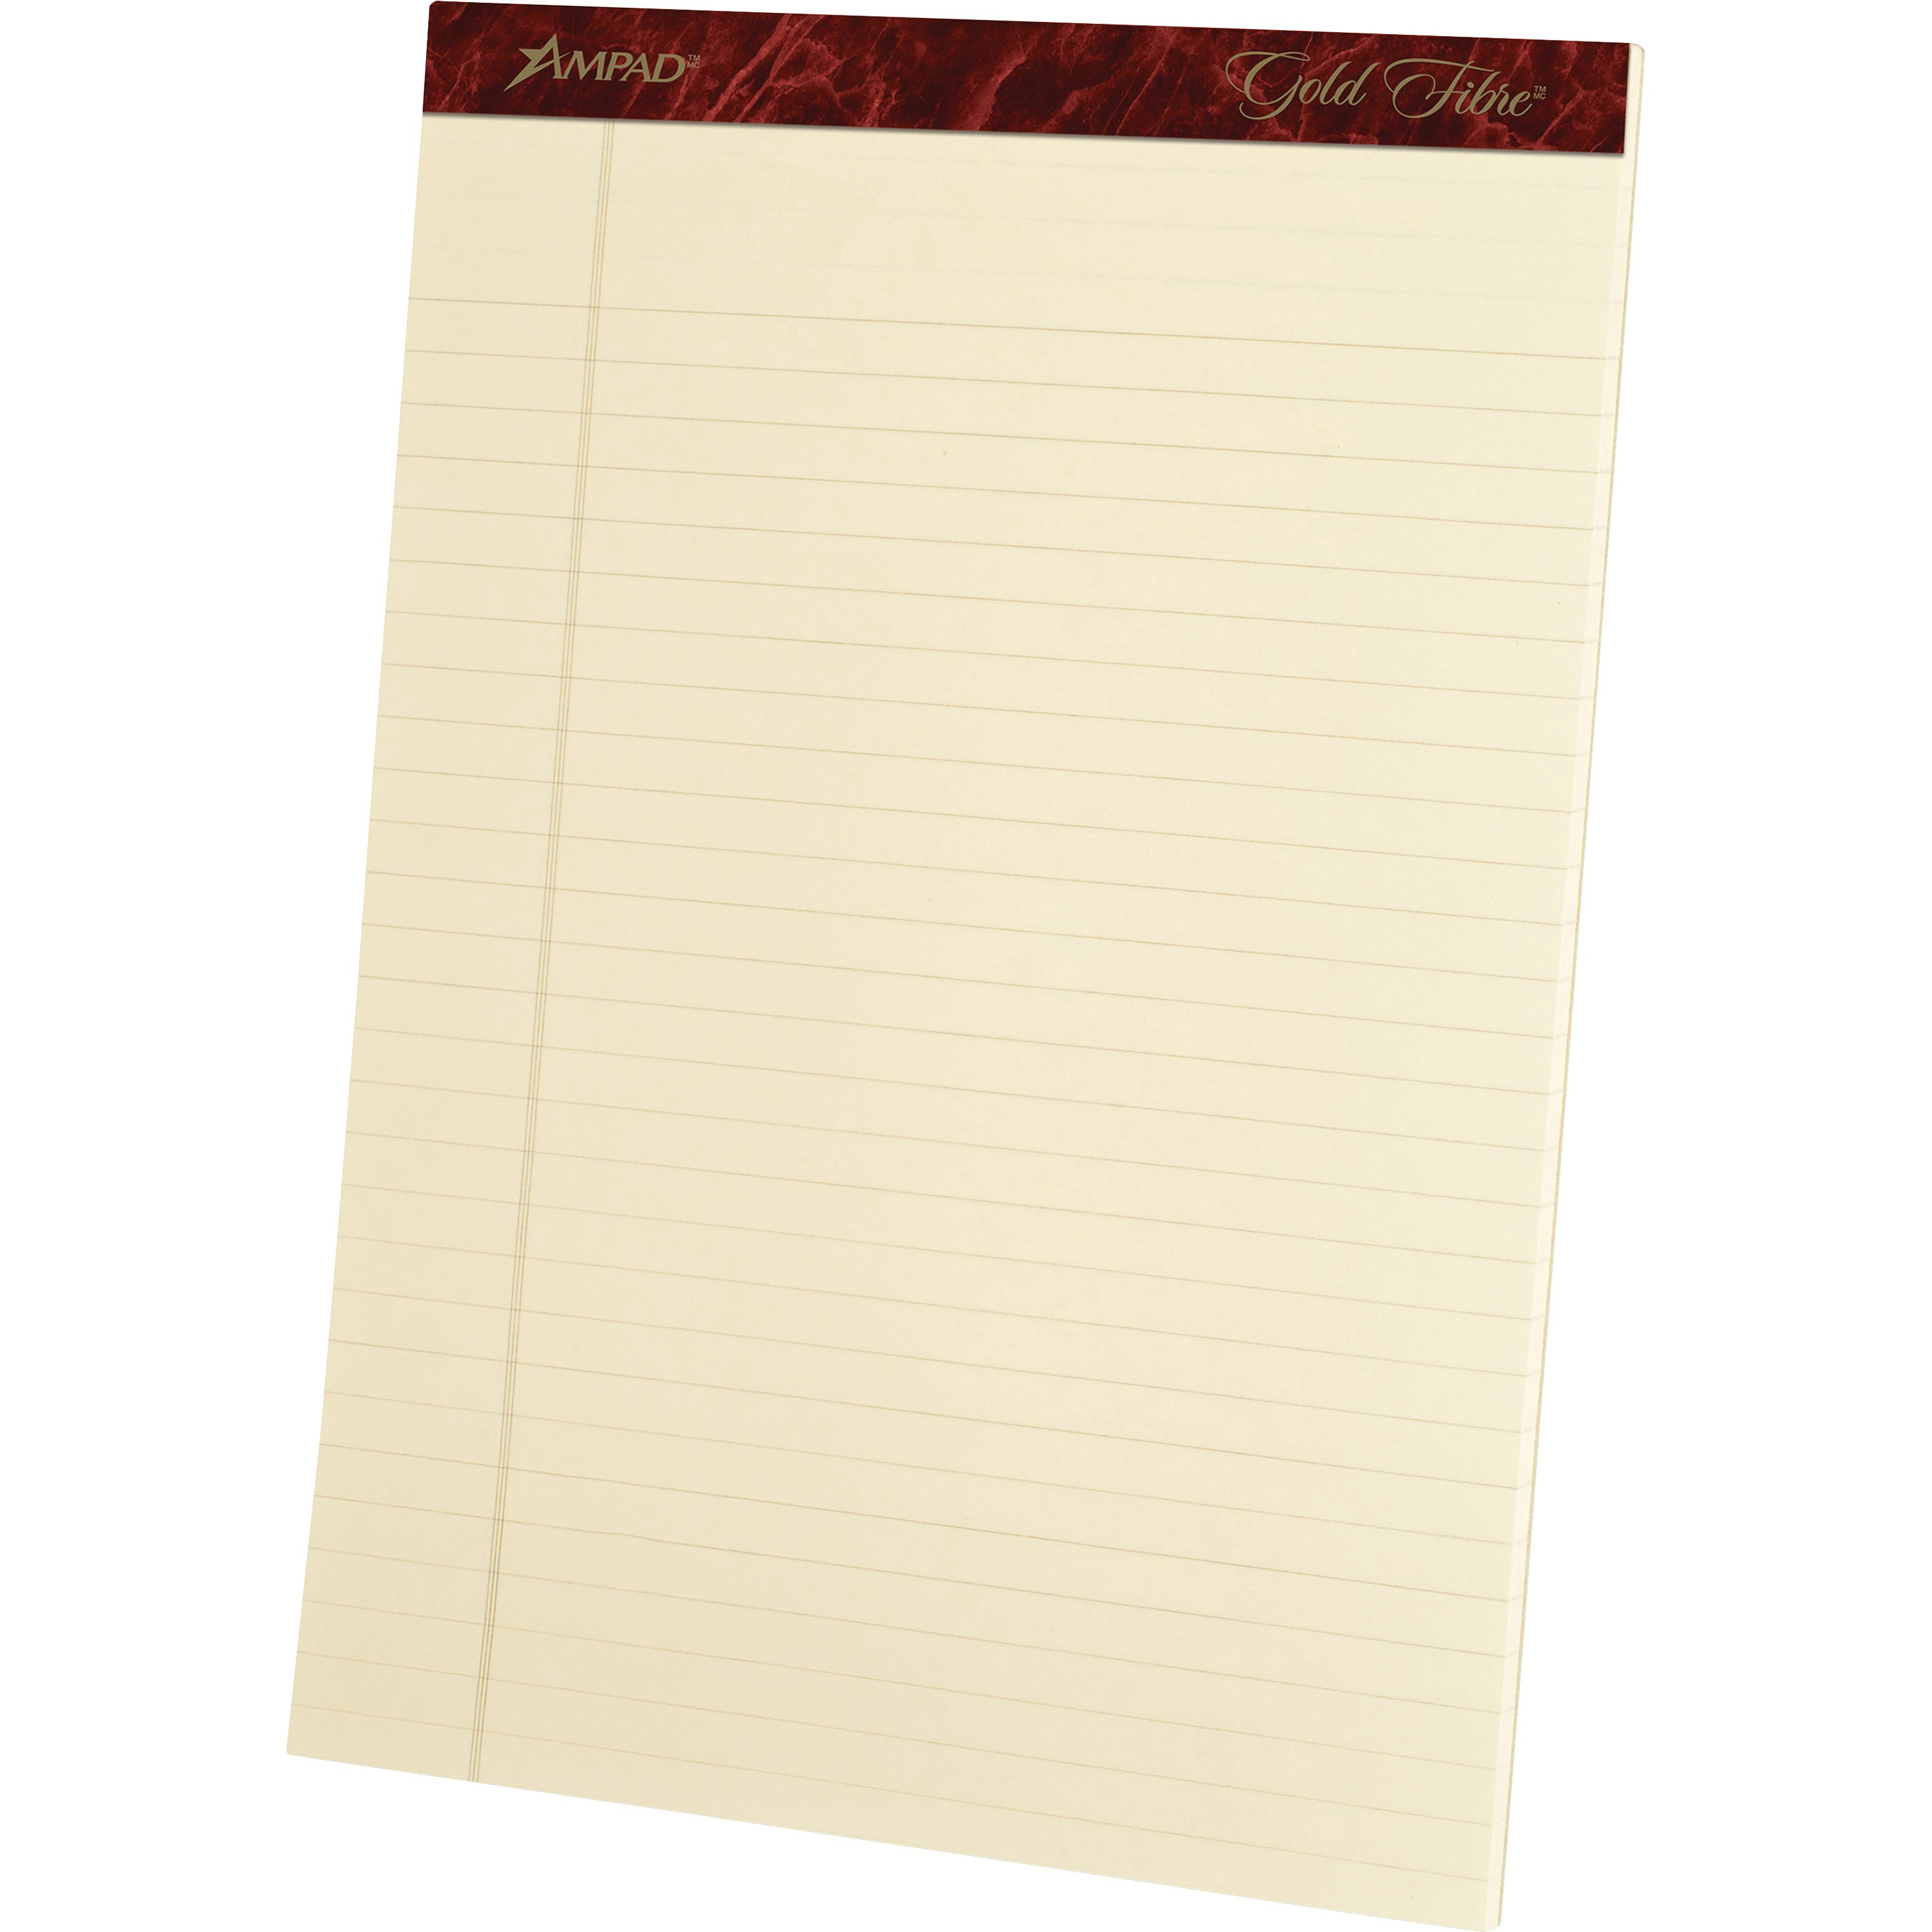 Ampad, TOP20011, Gold Fibre Legal Rule Retro Writing Pads, 4   Pack by TOPS Products